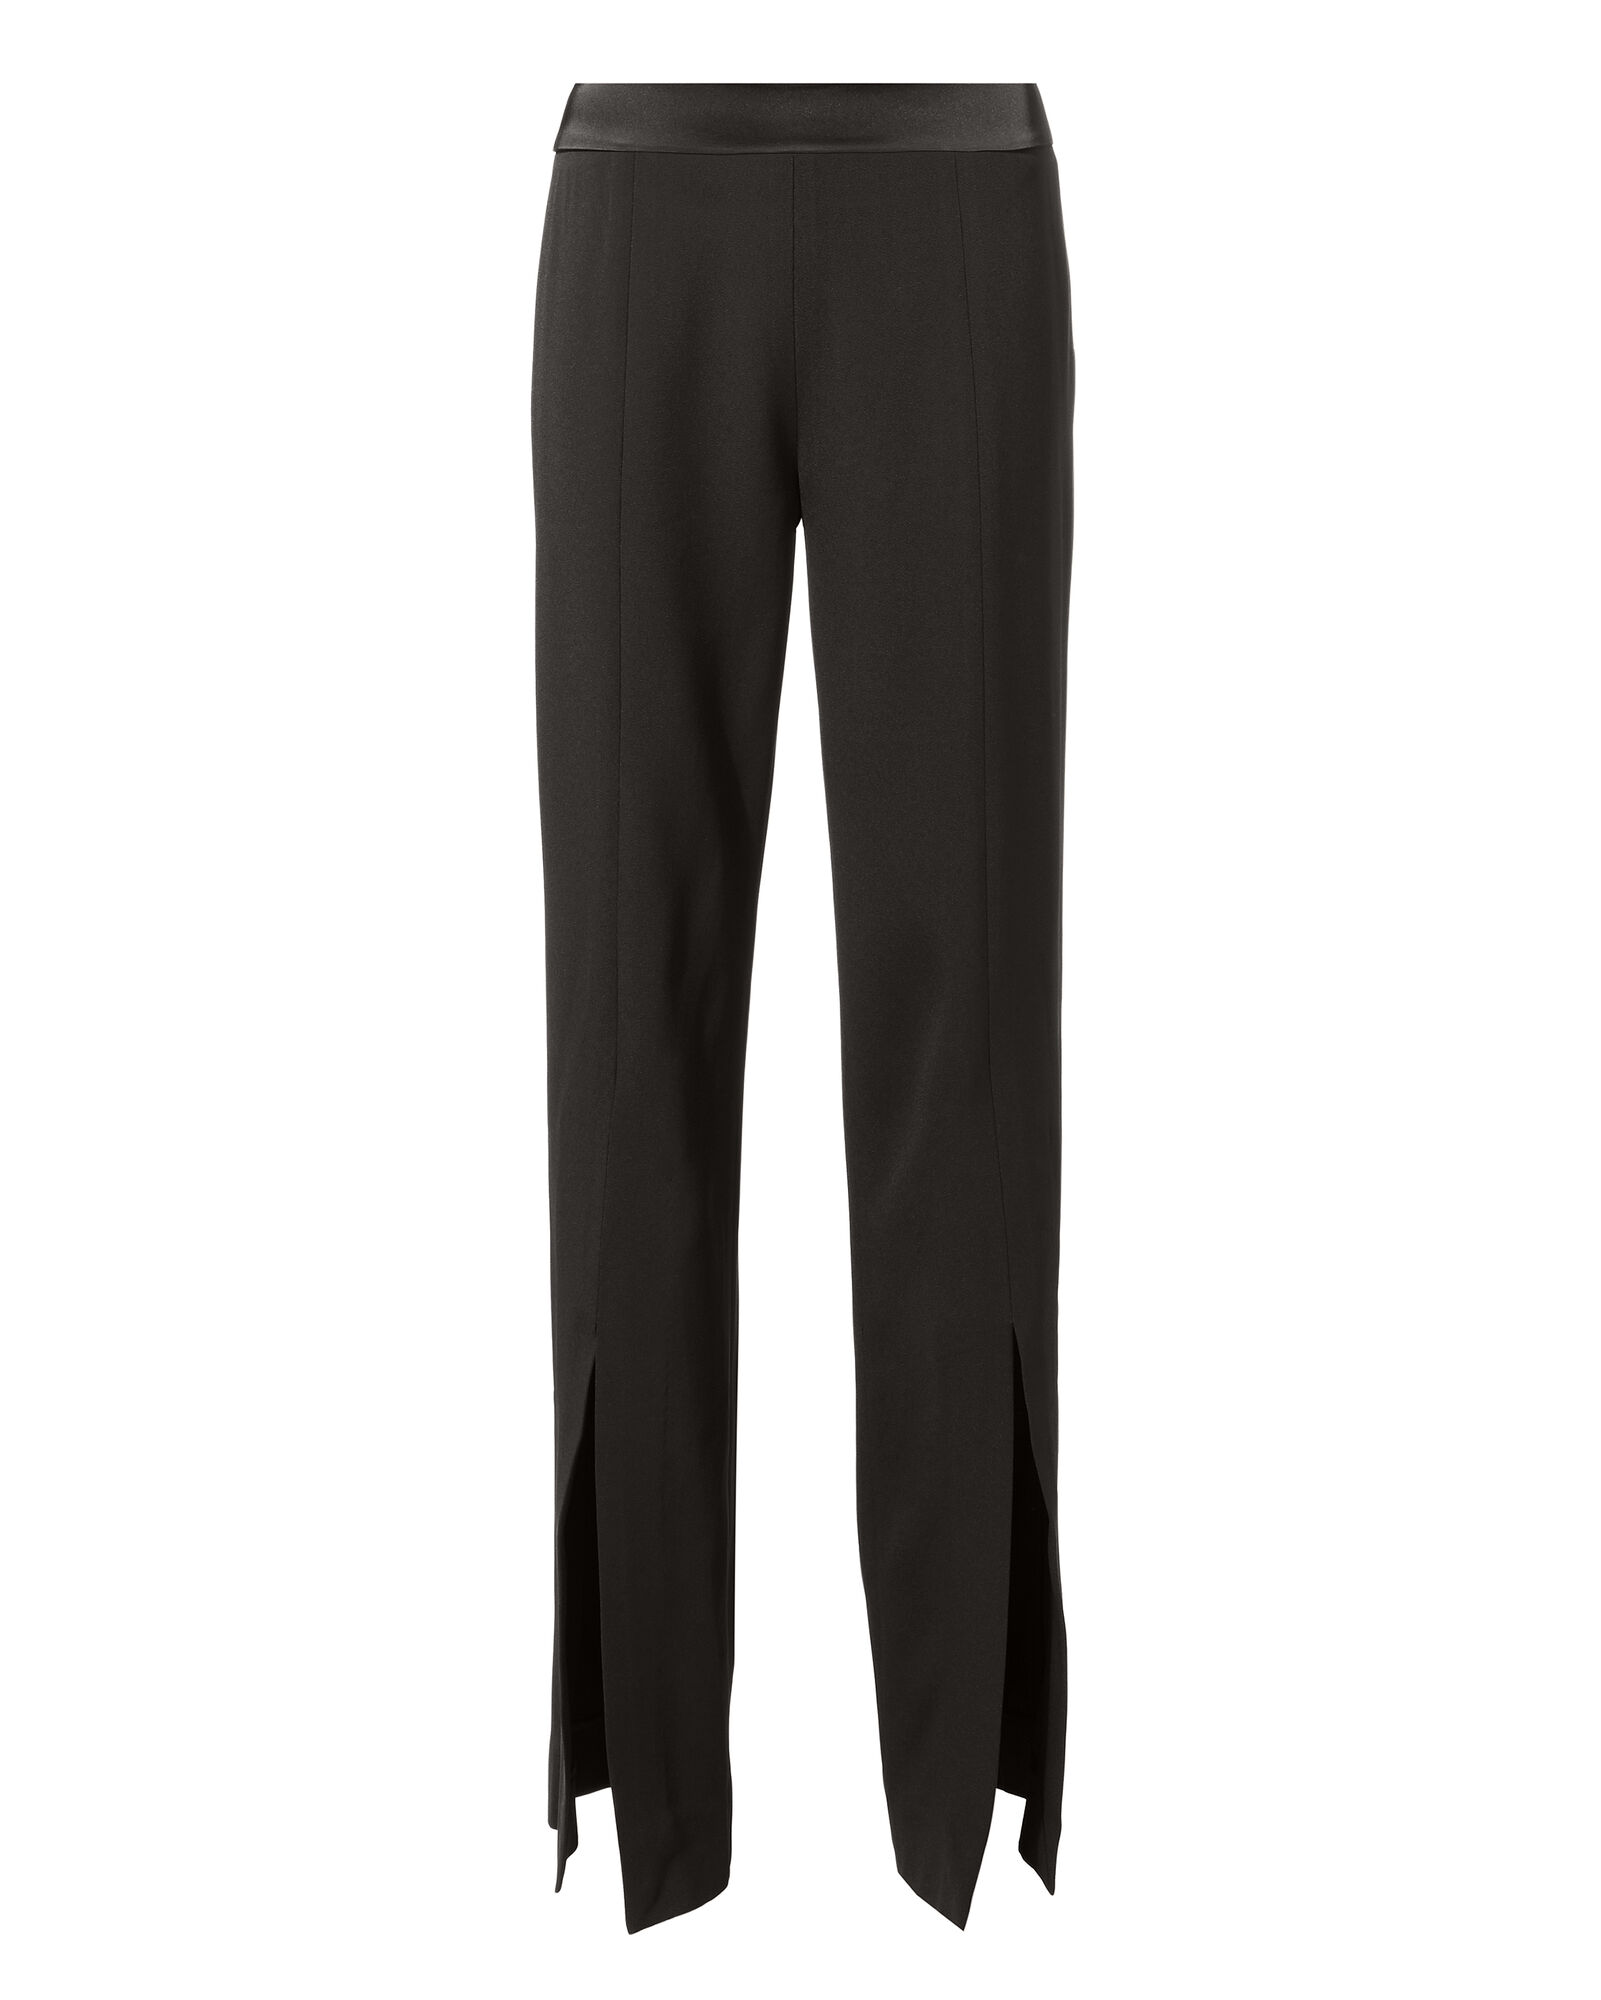 Satin Front Slit Pants, BLACK, hi-res